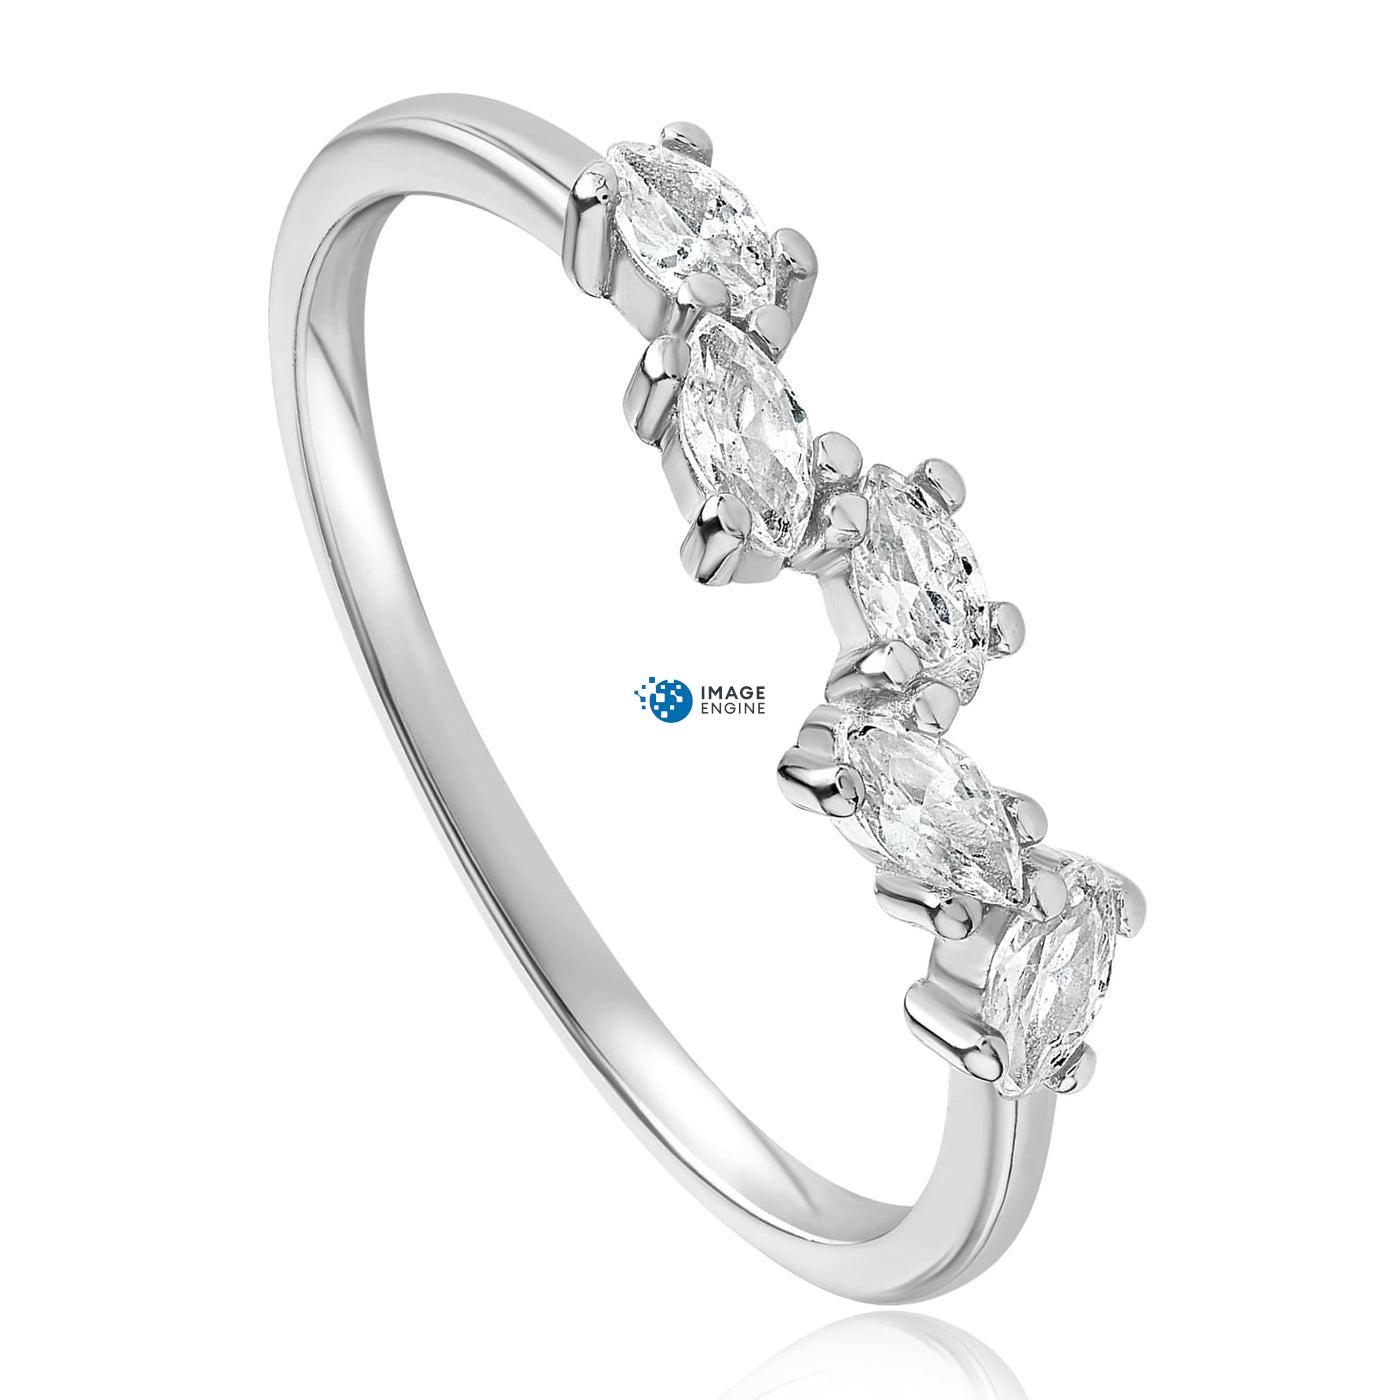 Genna Round Cut Ring - Three Quarter View - 925 Sterling Silver